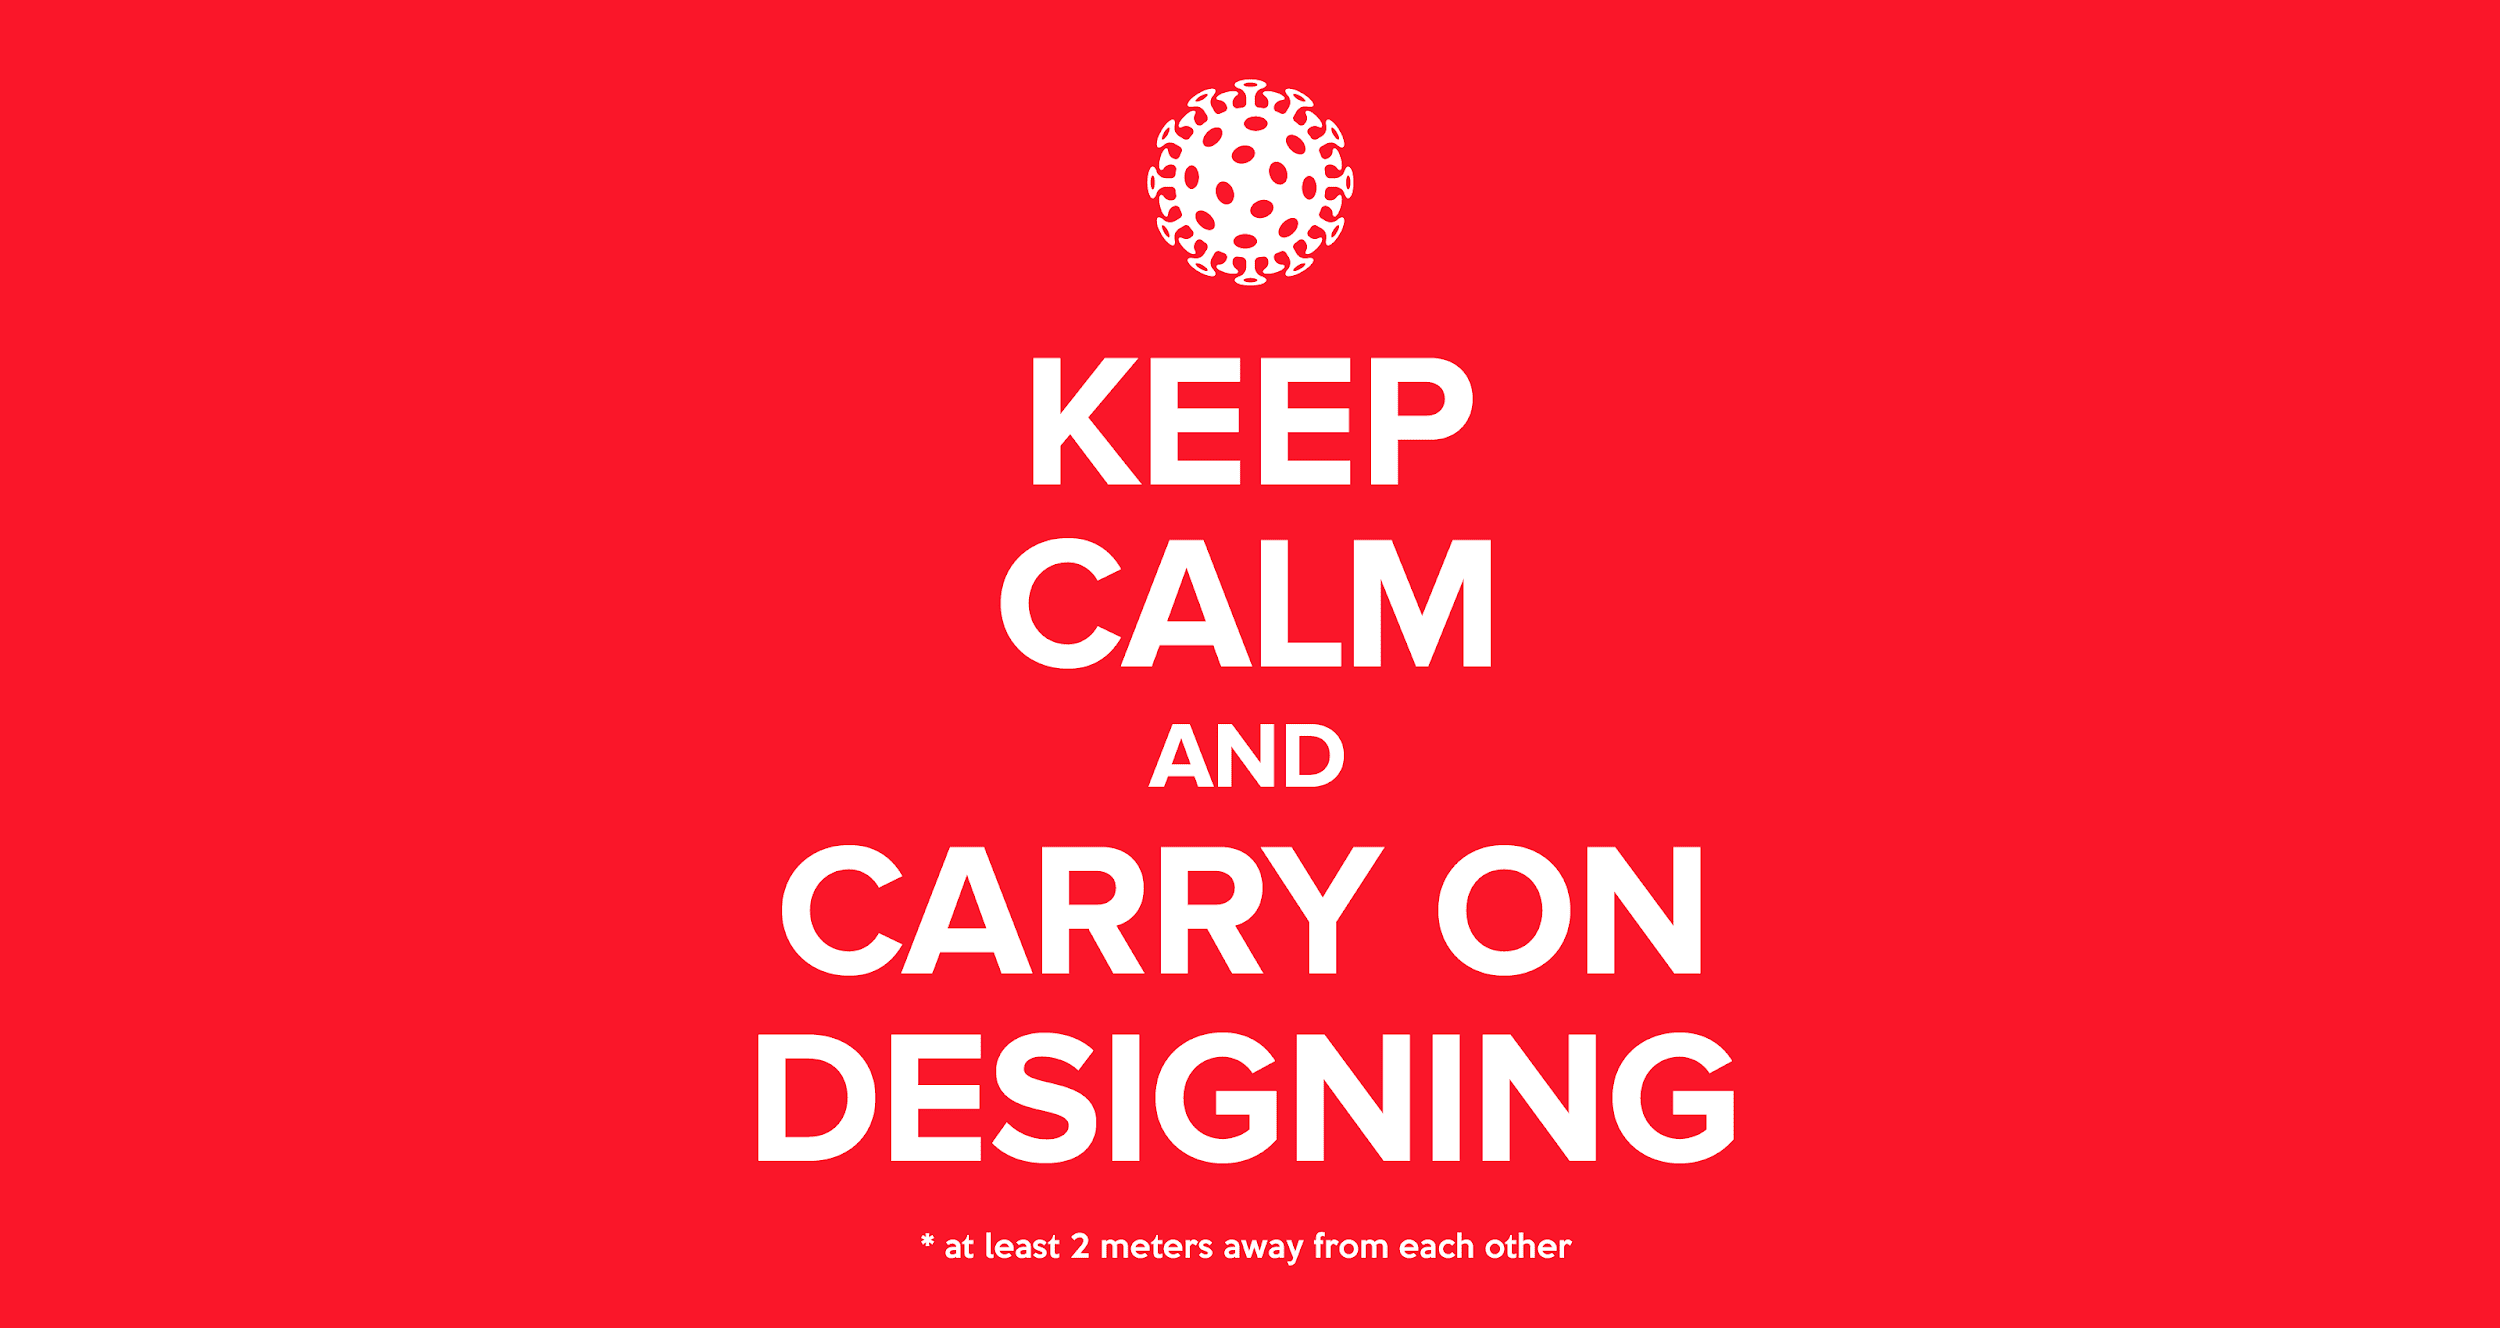 Keep calm and carry on - applying design thinking to the coronavirus pandemic